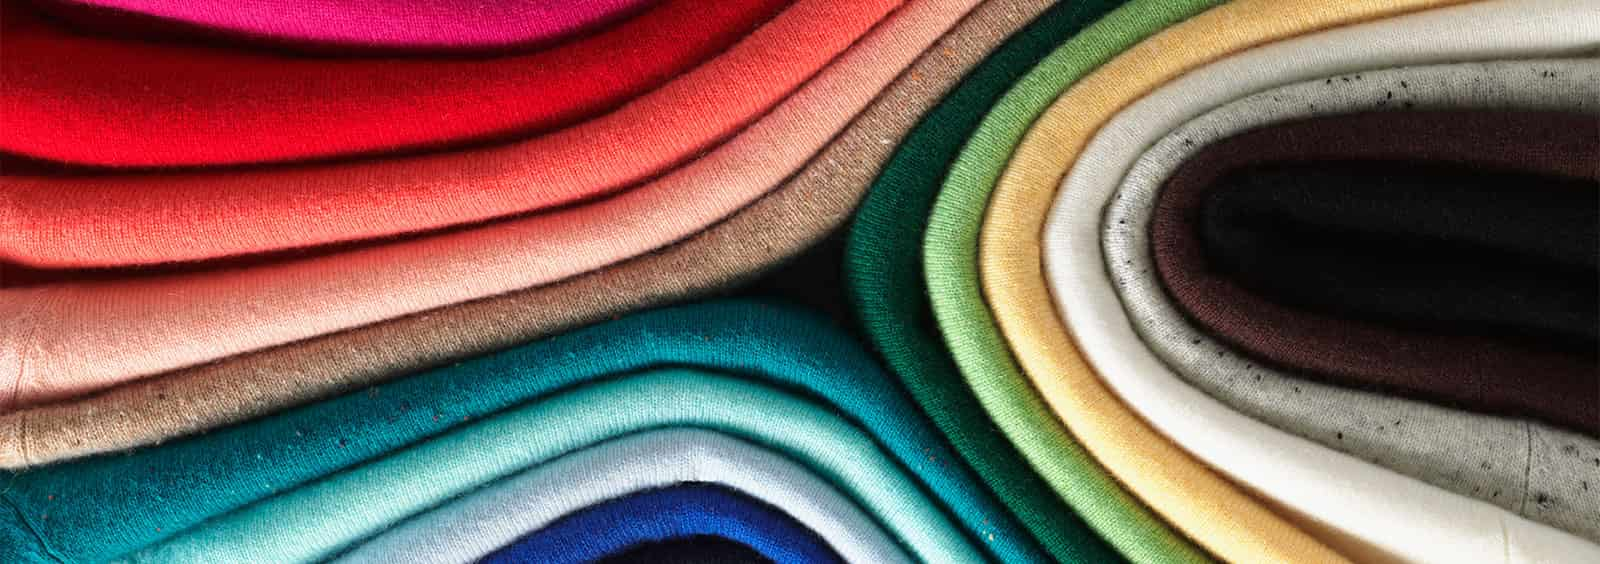 10 Different Types of Sweaters